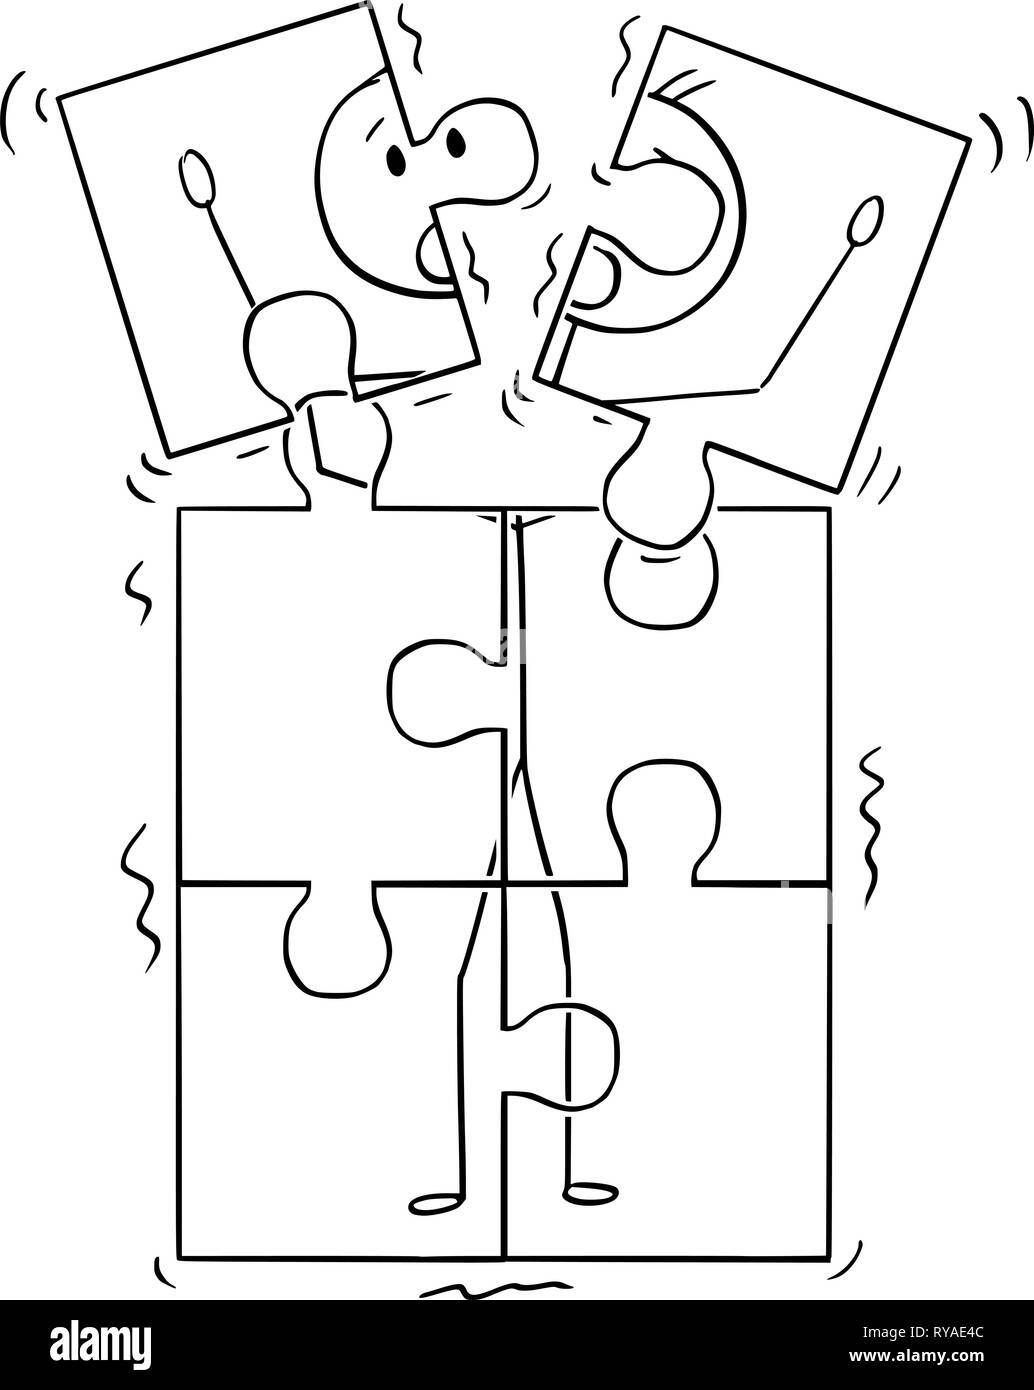 Cartoon of Image of Man Broking Up in Jigsaw Puzzle Pieces Stock Vector